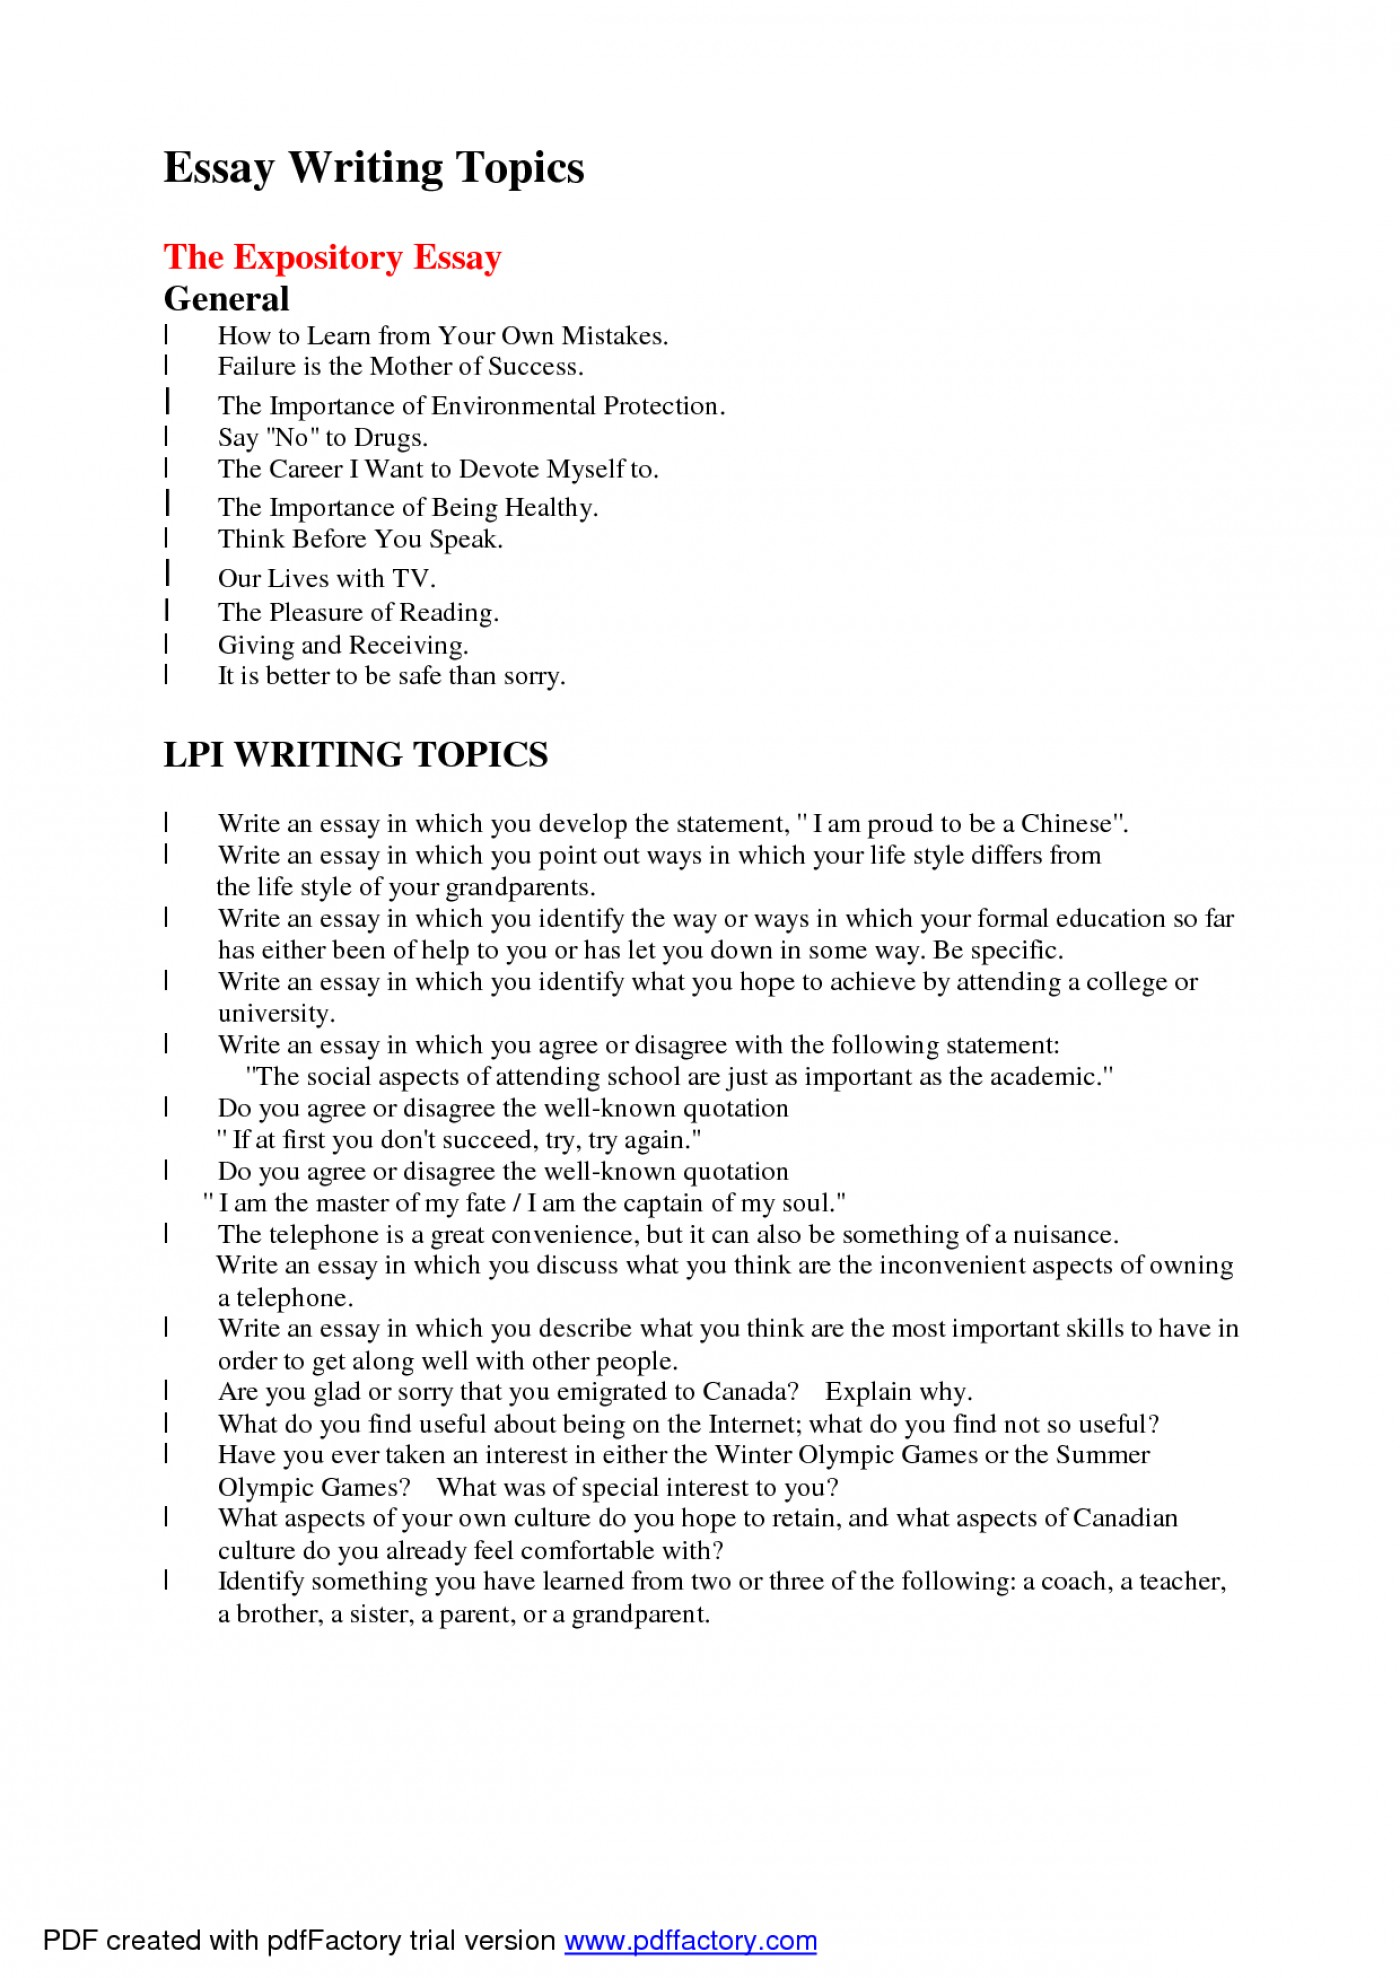 001 Essay Topics To Write About Arguable Good L Issues An Awesome Interesting On For High School Social 1400